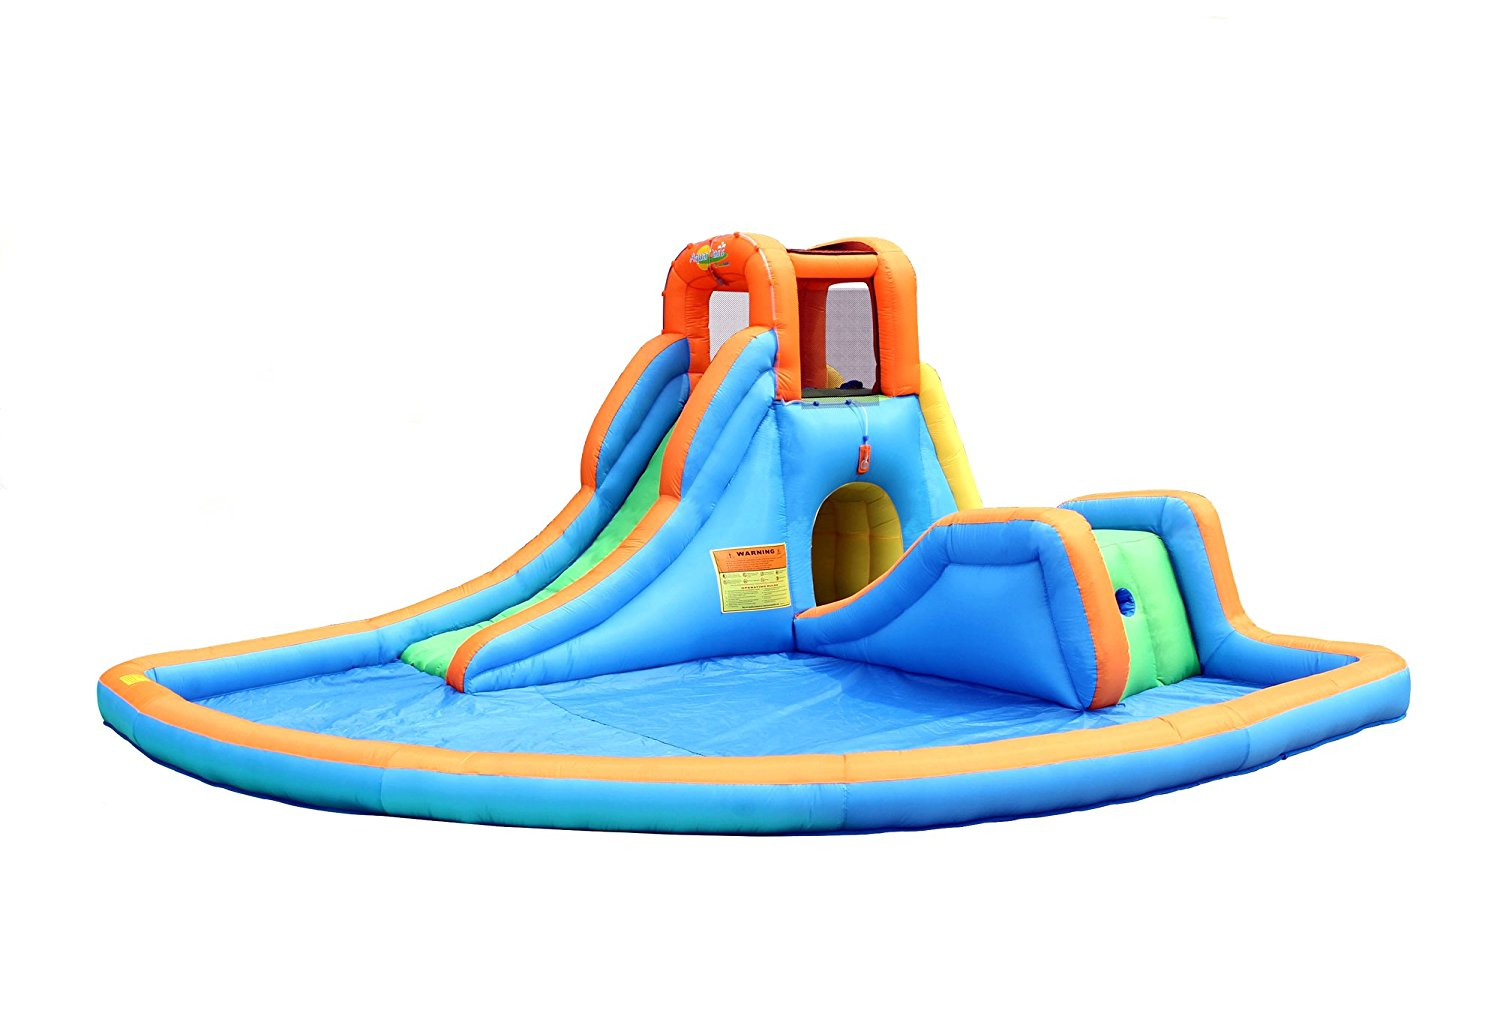 Bounceland Inflatable Cascade Water Slide - Incorporated Pool, Made from Heavy-Duty Puncture Proof Materials